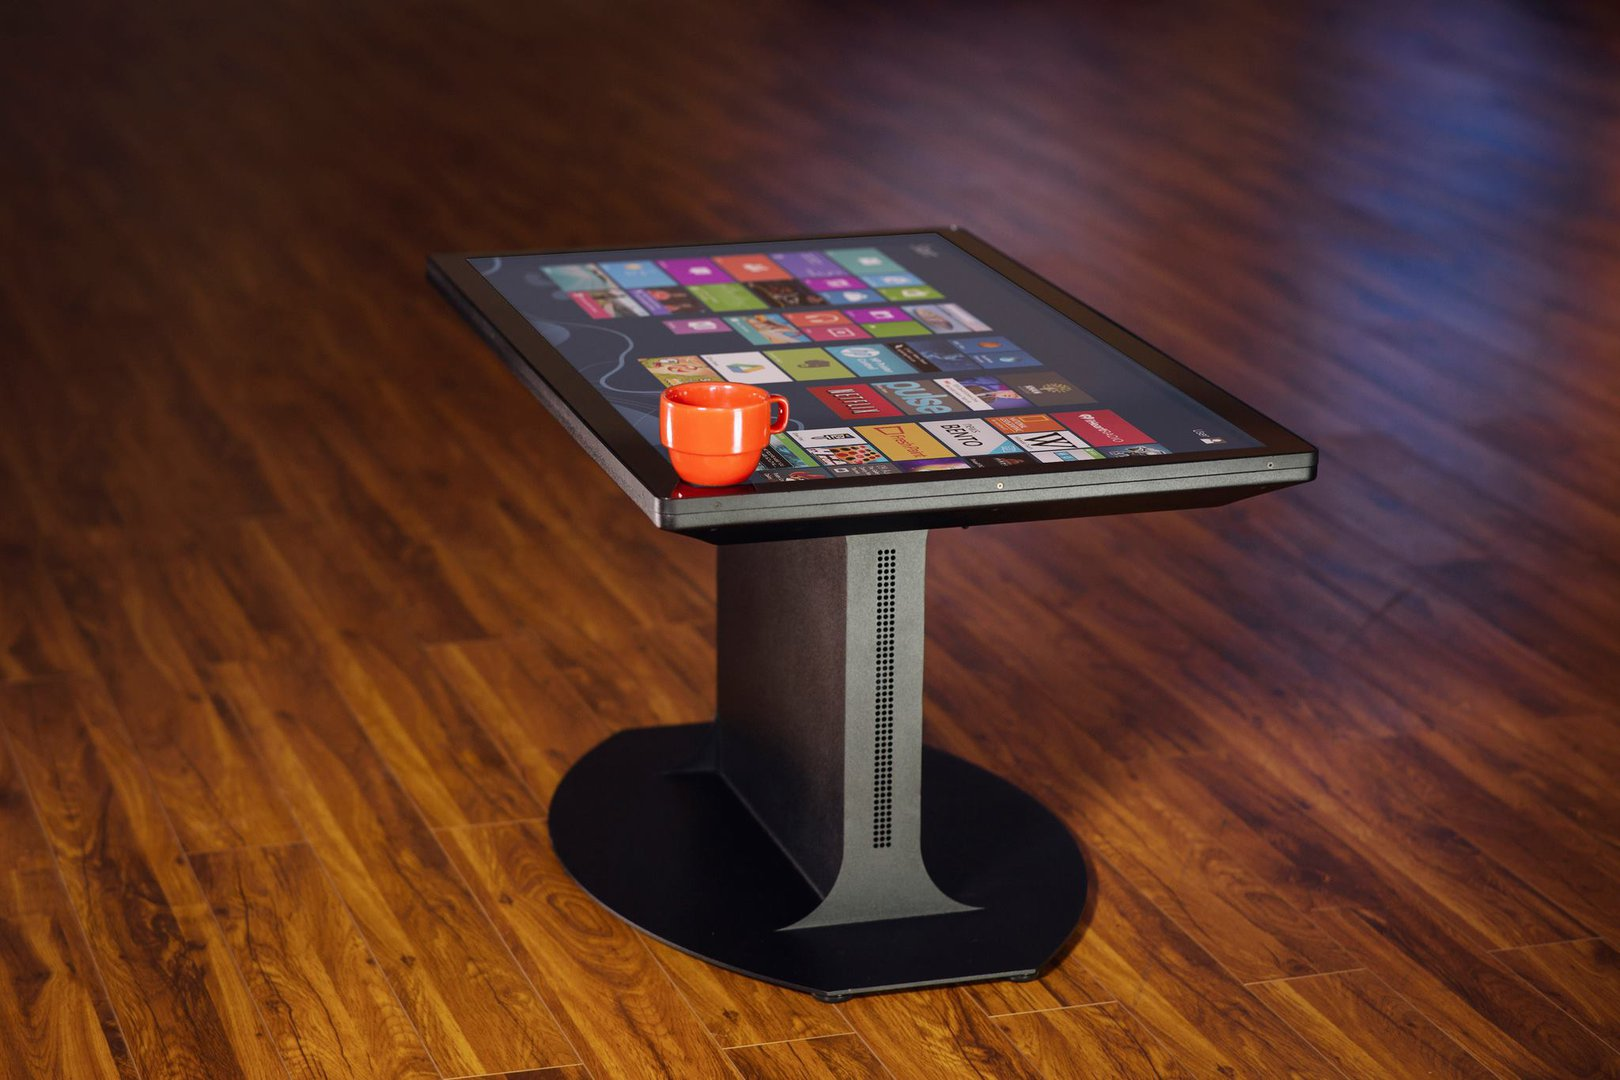 Smart table Ideum Duet